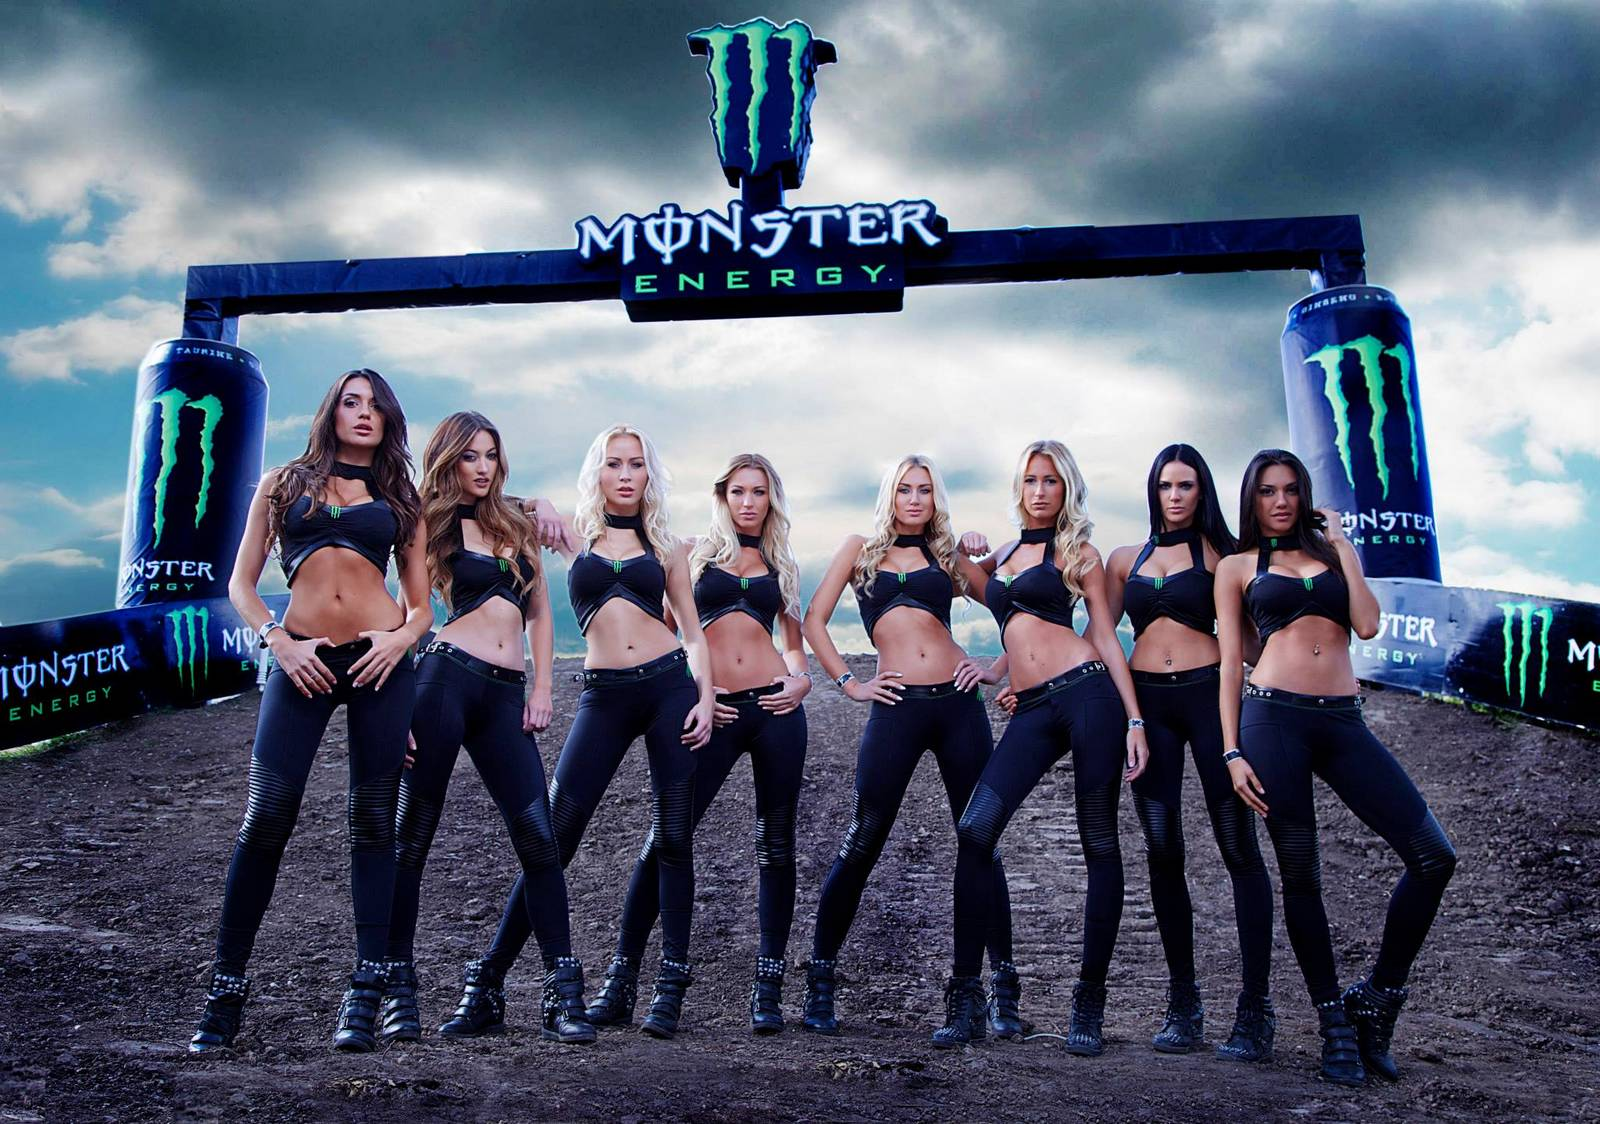 Hot monster energy girls fuck erotic photos